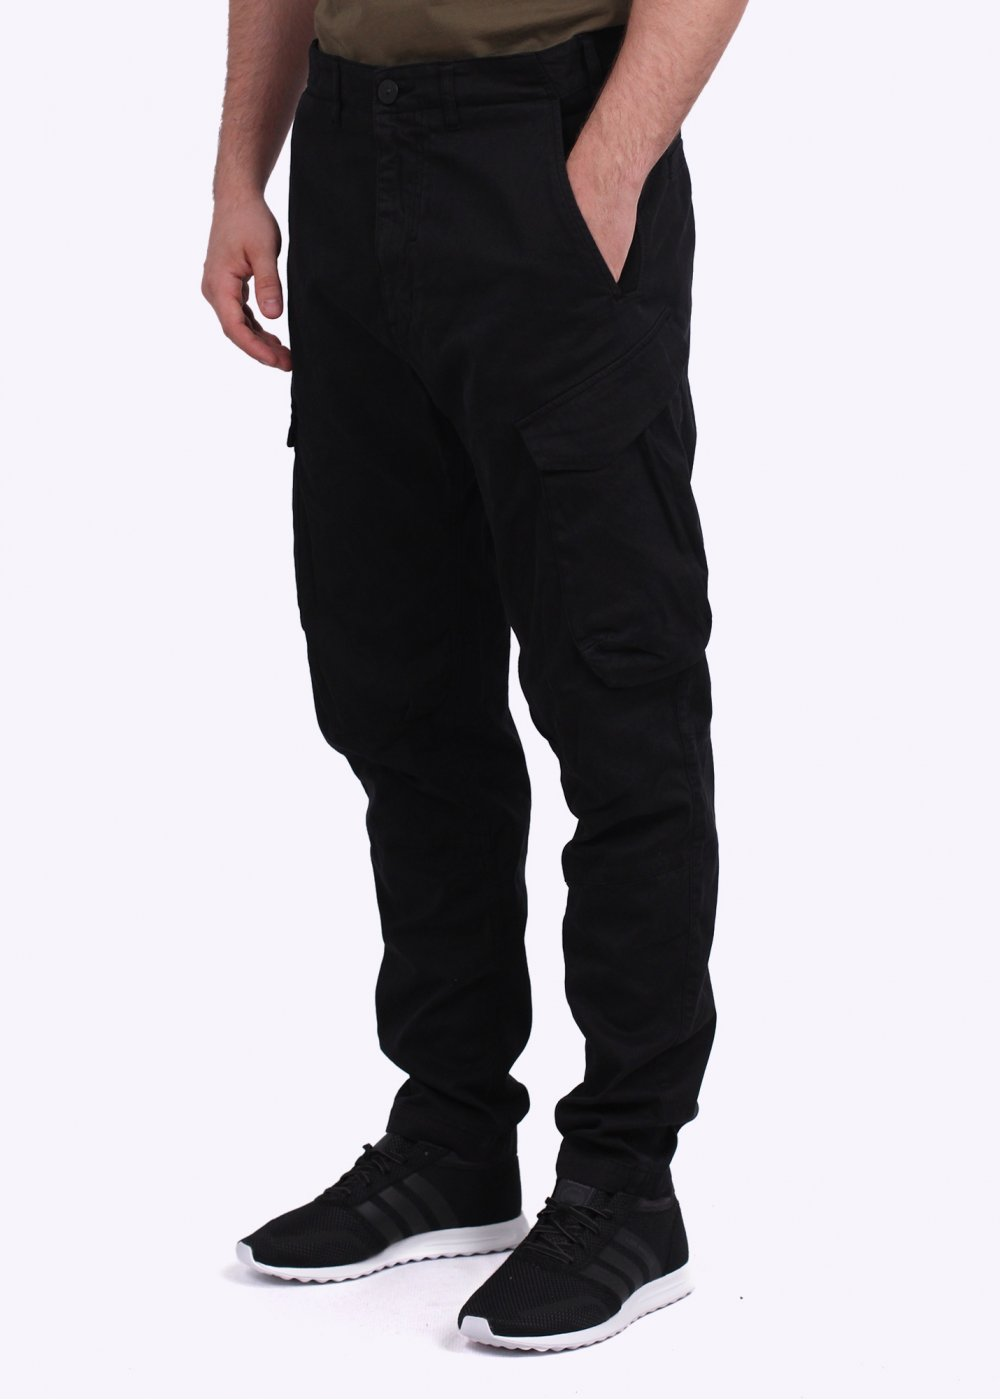 Stone Island Cargo Pants - Black - Trousers from Triads UK